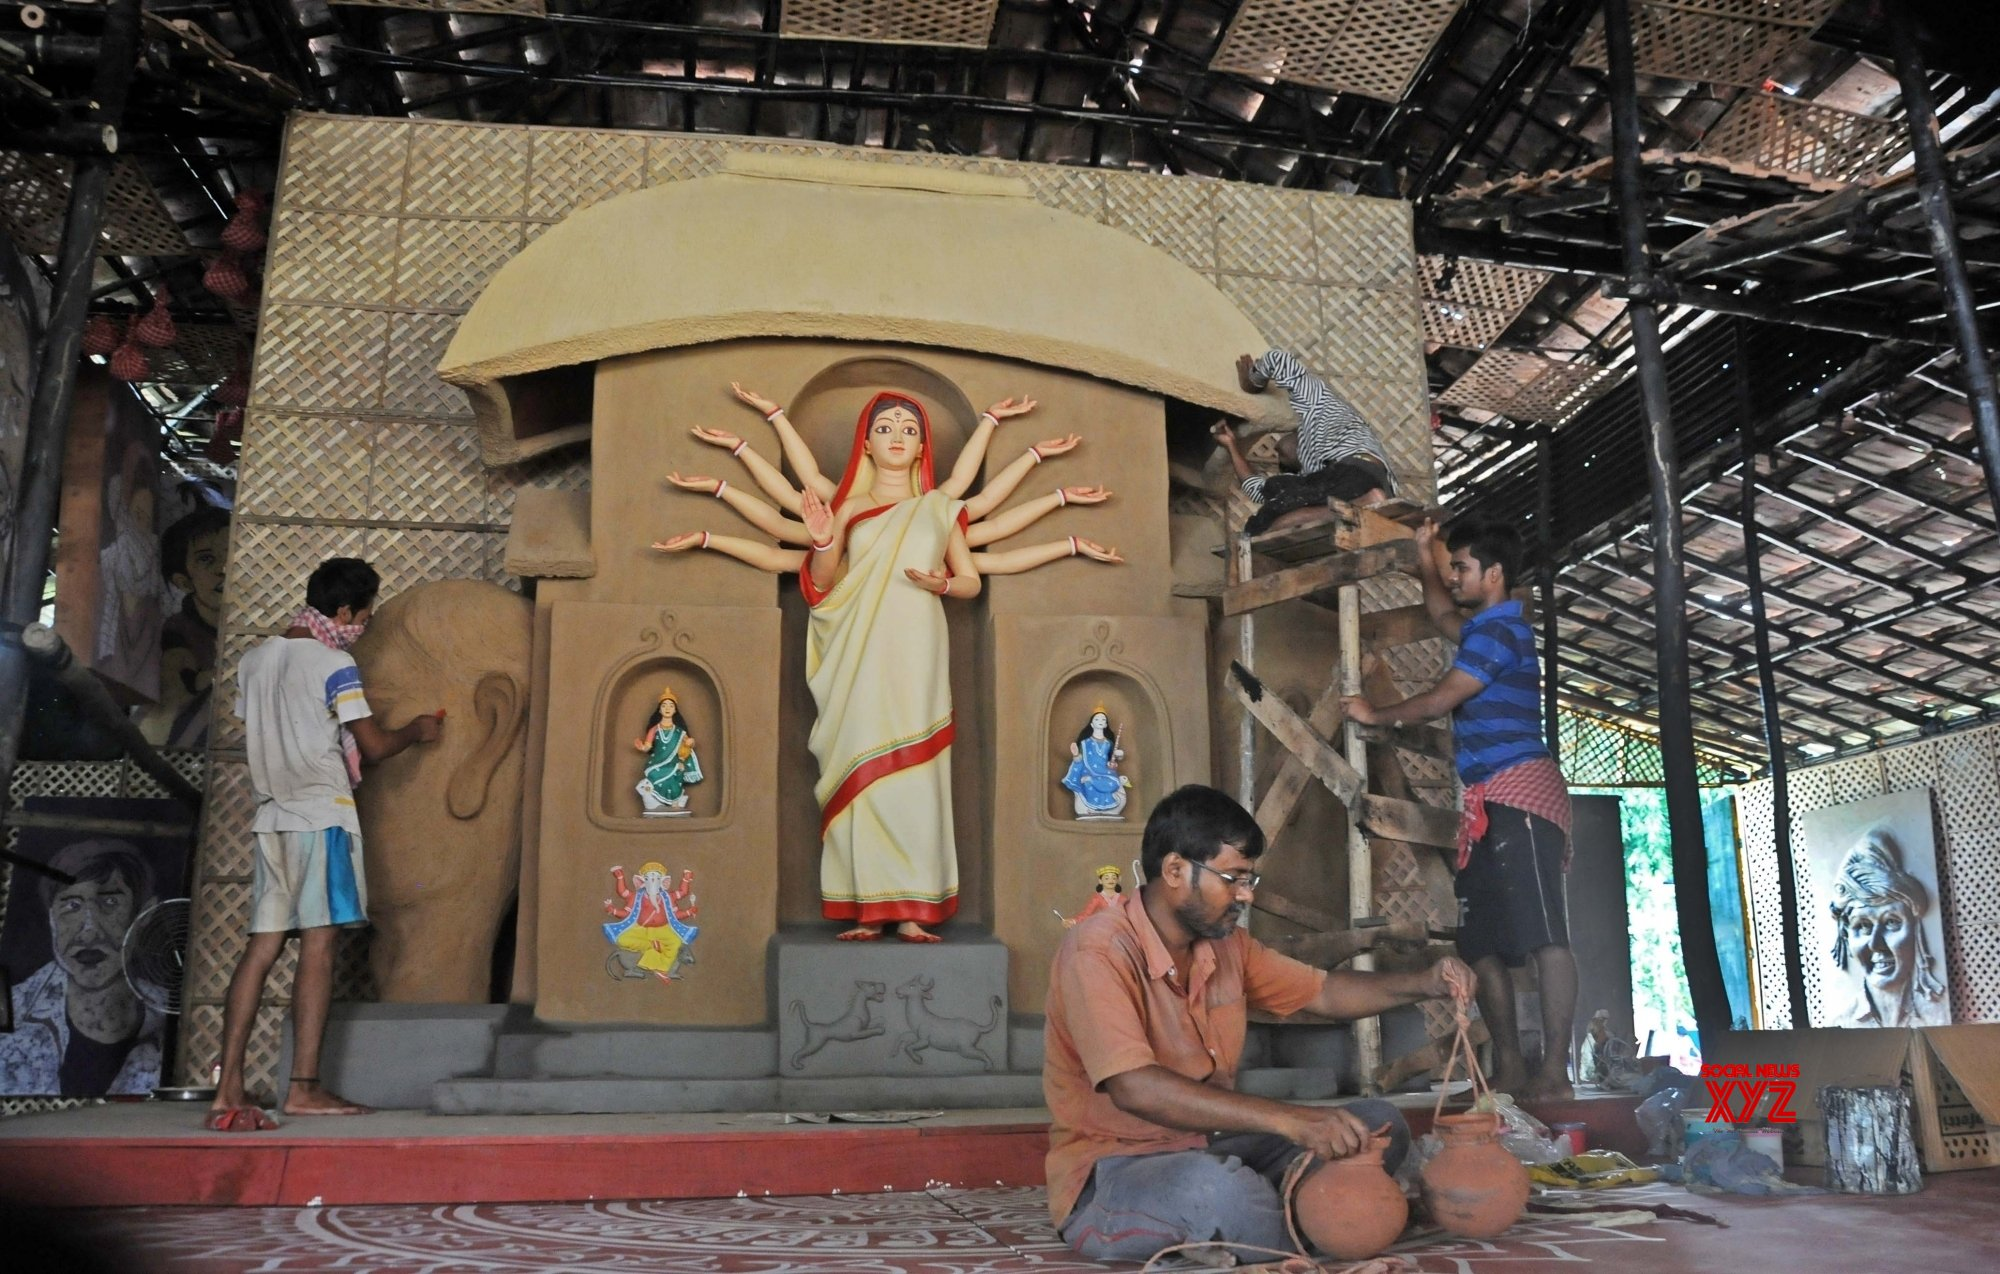 Kolkata: Puja Committee comes up with Durga Puja pandal on the theme of migrant laborers #Gallery